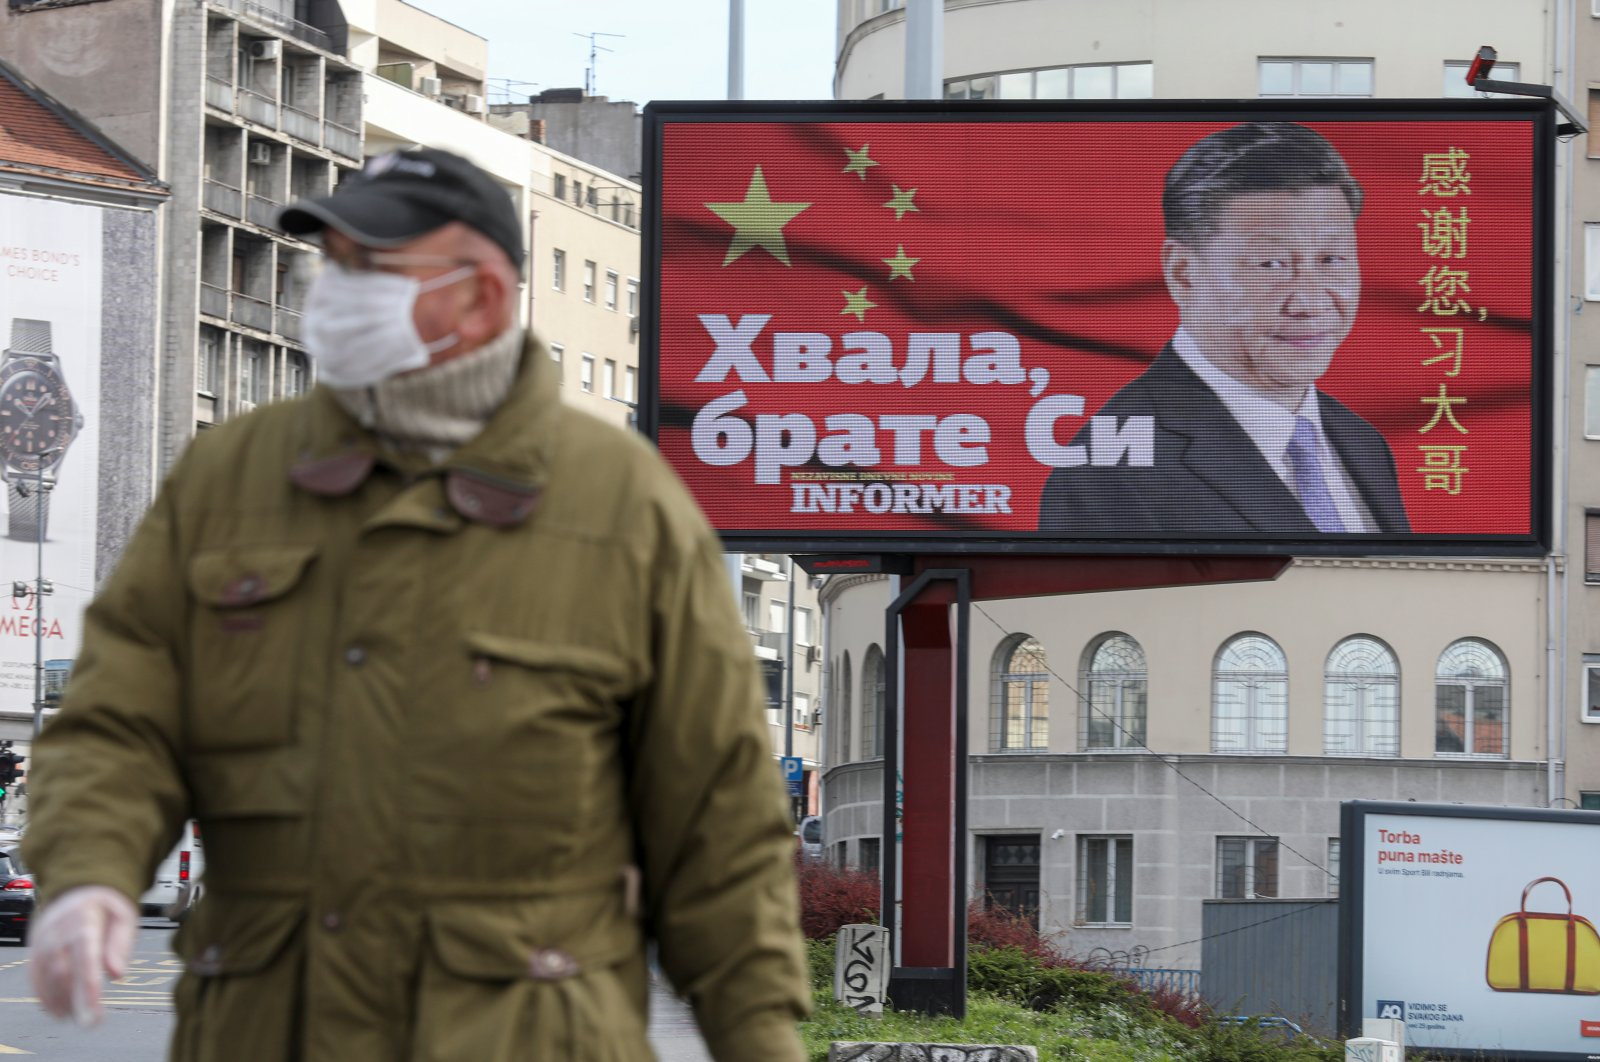 """A man wearing a protective mask passes by a billboard depicting Chinese President Xi Jinping that reads """"Thanks, brother Xi"""" amid COVID-19 pandemic, in Belgrade, Serbia, April 1, 2020. (Reuters Photo)"""